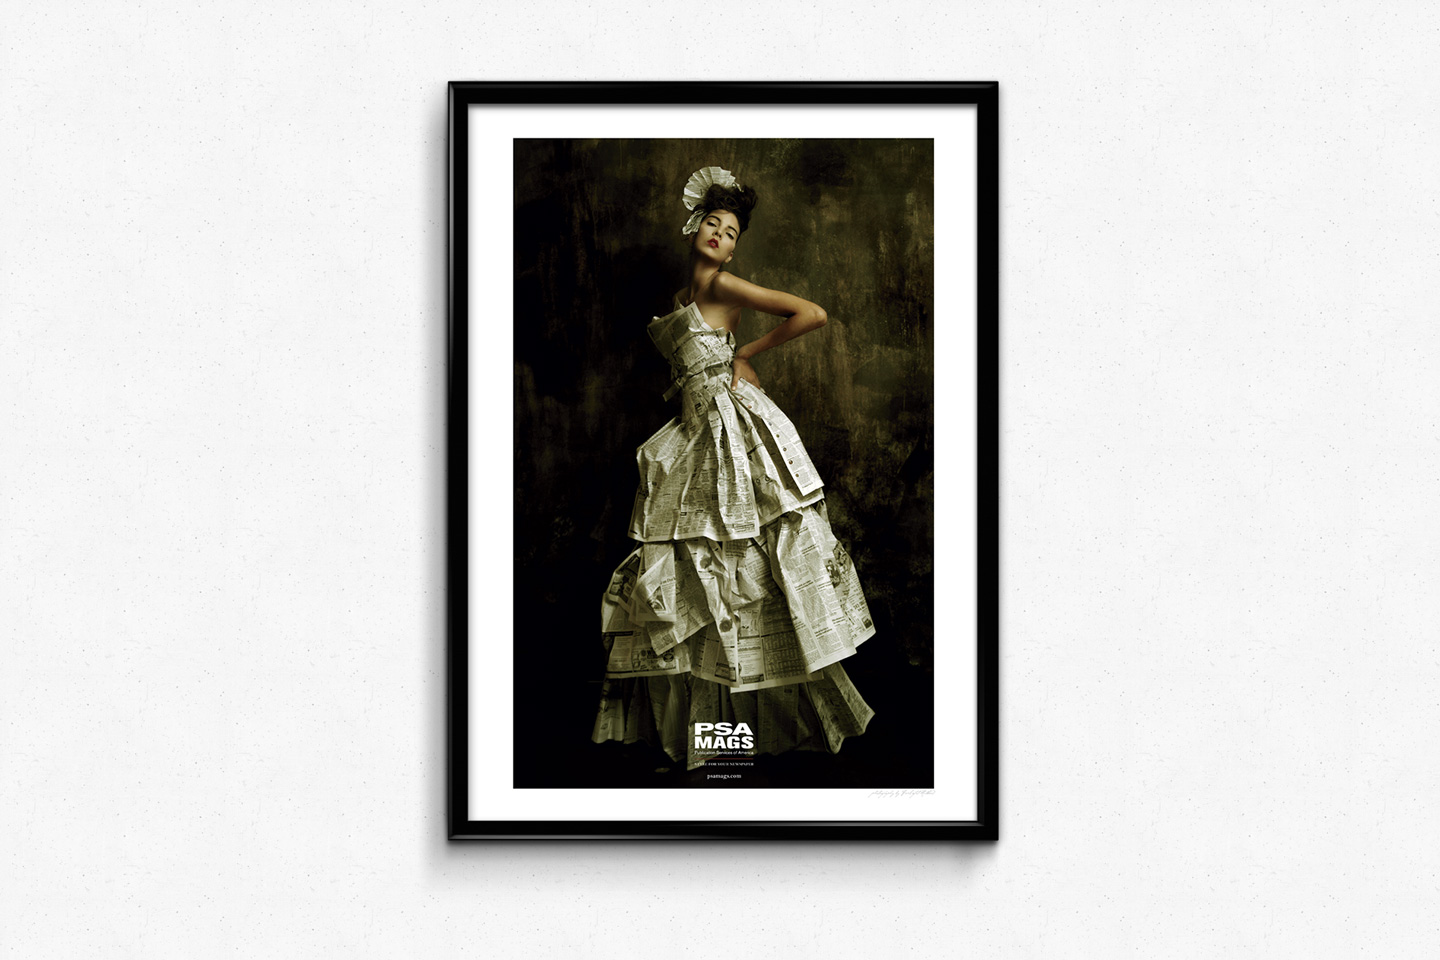 A single, framed poster of a woman dressed in a high-fashion dress made of newspaper